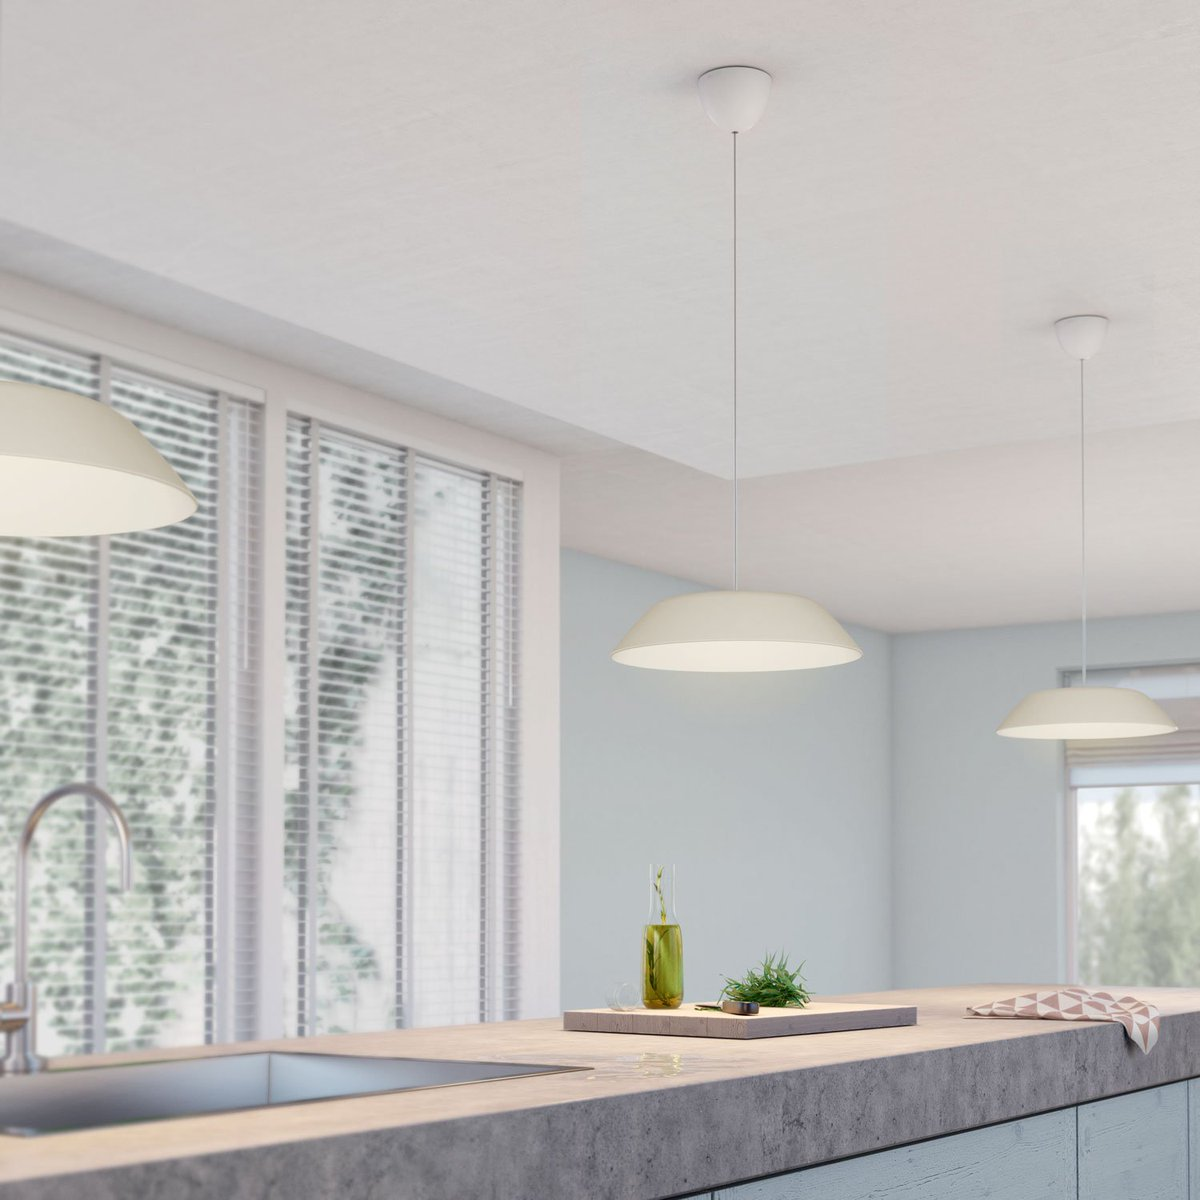 Wickes Kitchen Pendant Lights: WICKES (@Wickes)